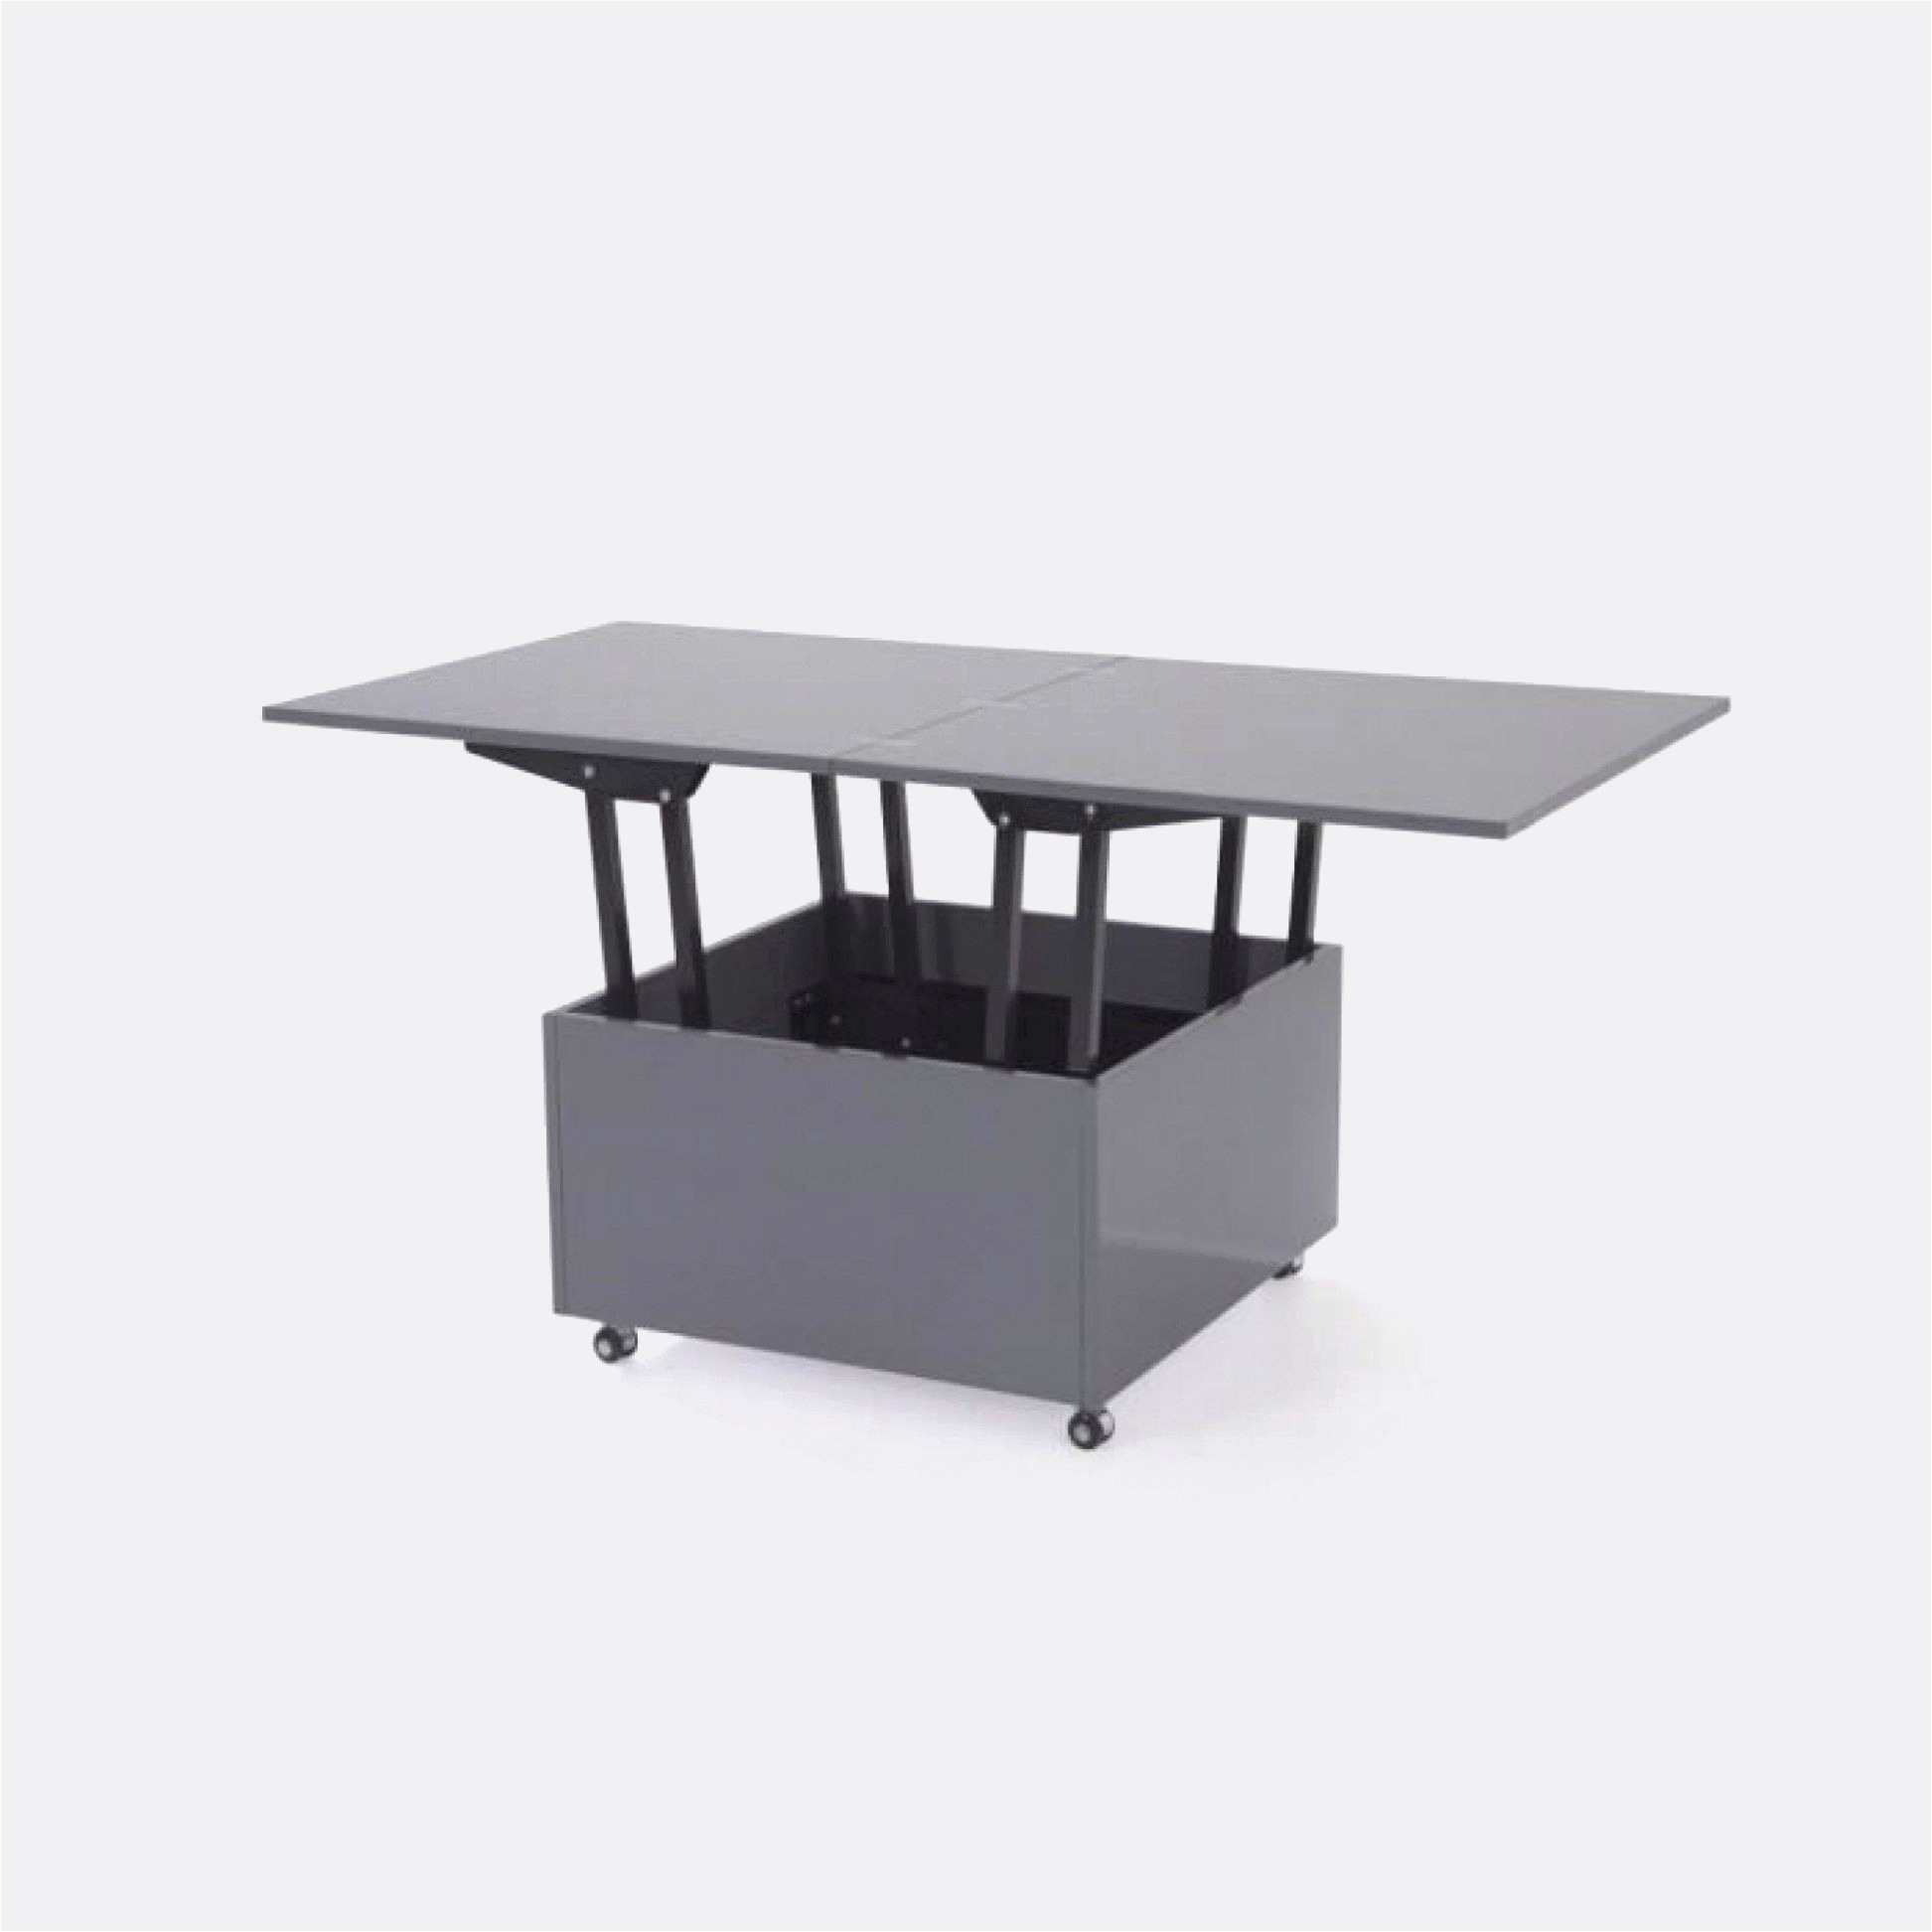 Table De Camping Carrefour Inspirant Collection Carrefour Table Pliante Frais Table De Camping Pliante Pas Cher